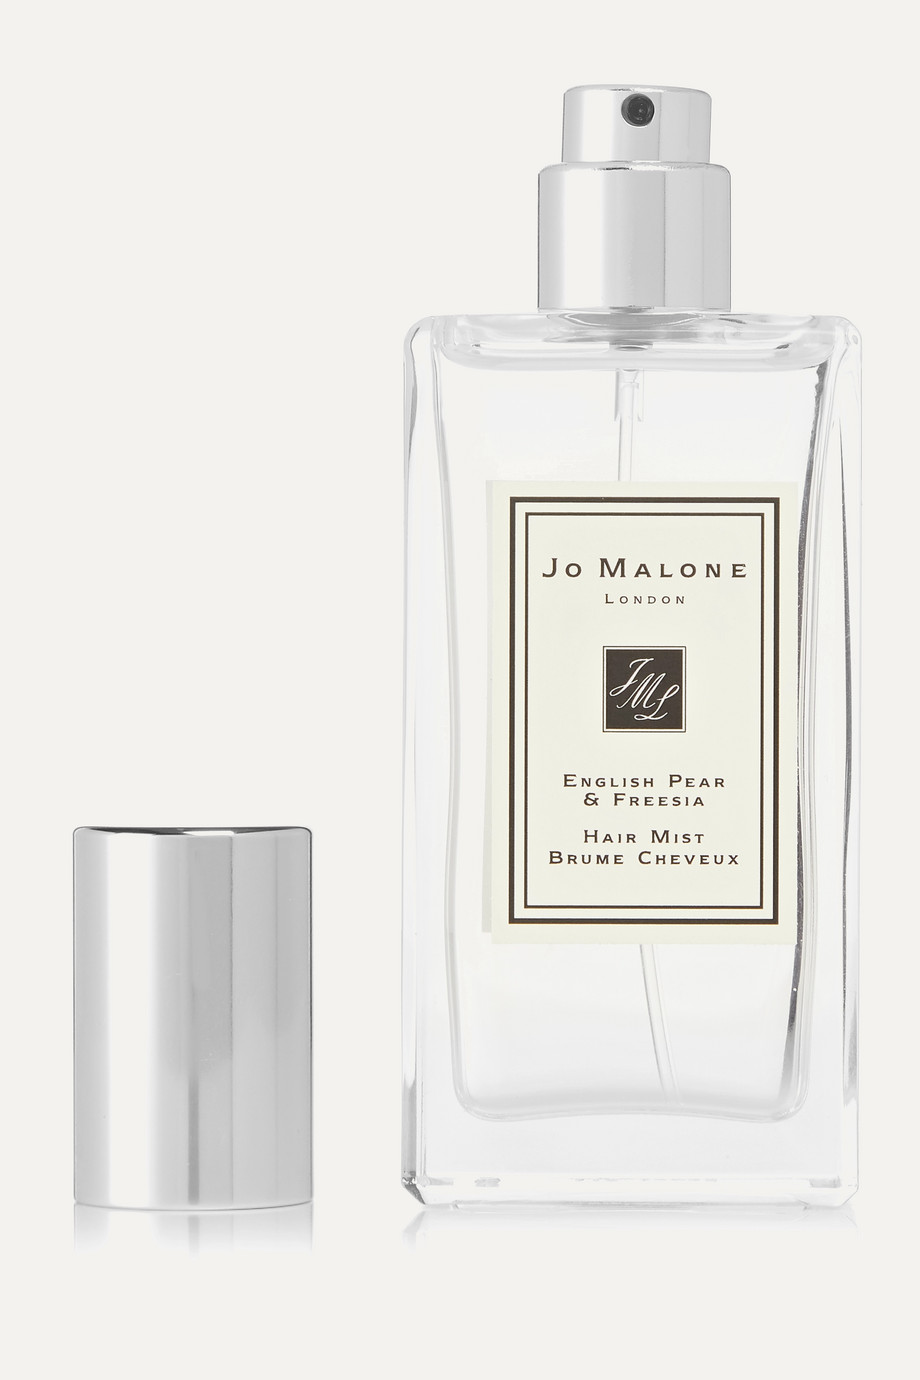 Jo Malone London English Pear & Freesia Hair Mist, 30ml